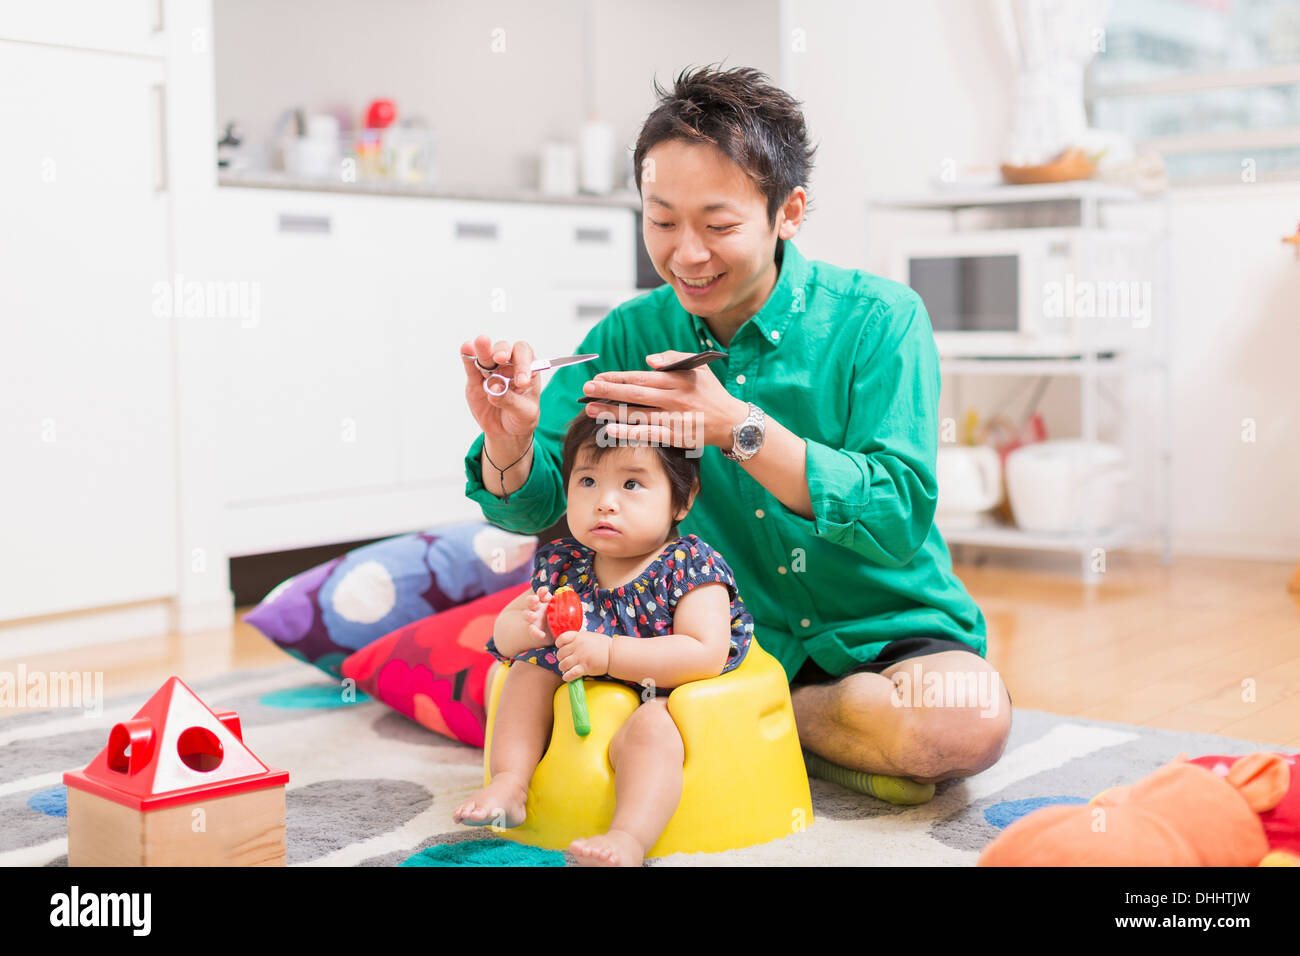 Father cutting baby's hair on floor - Stock Image